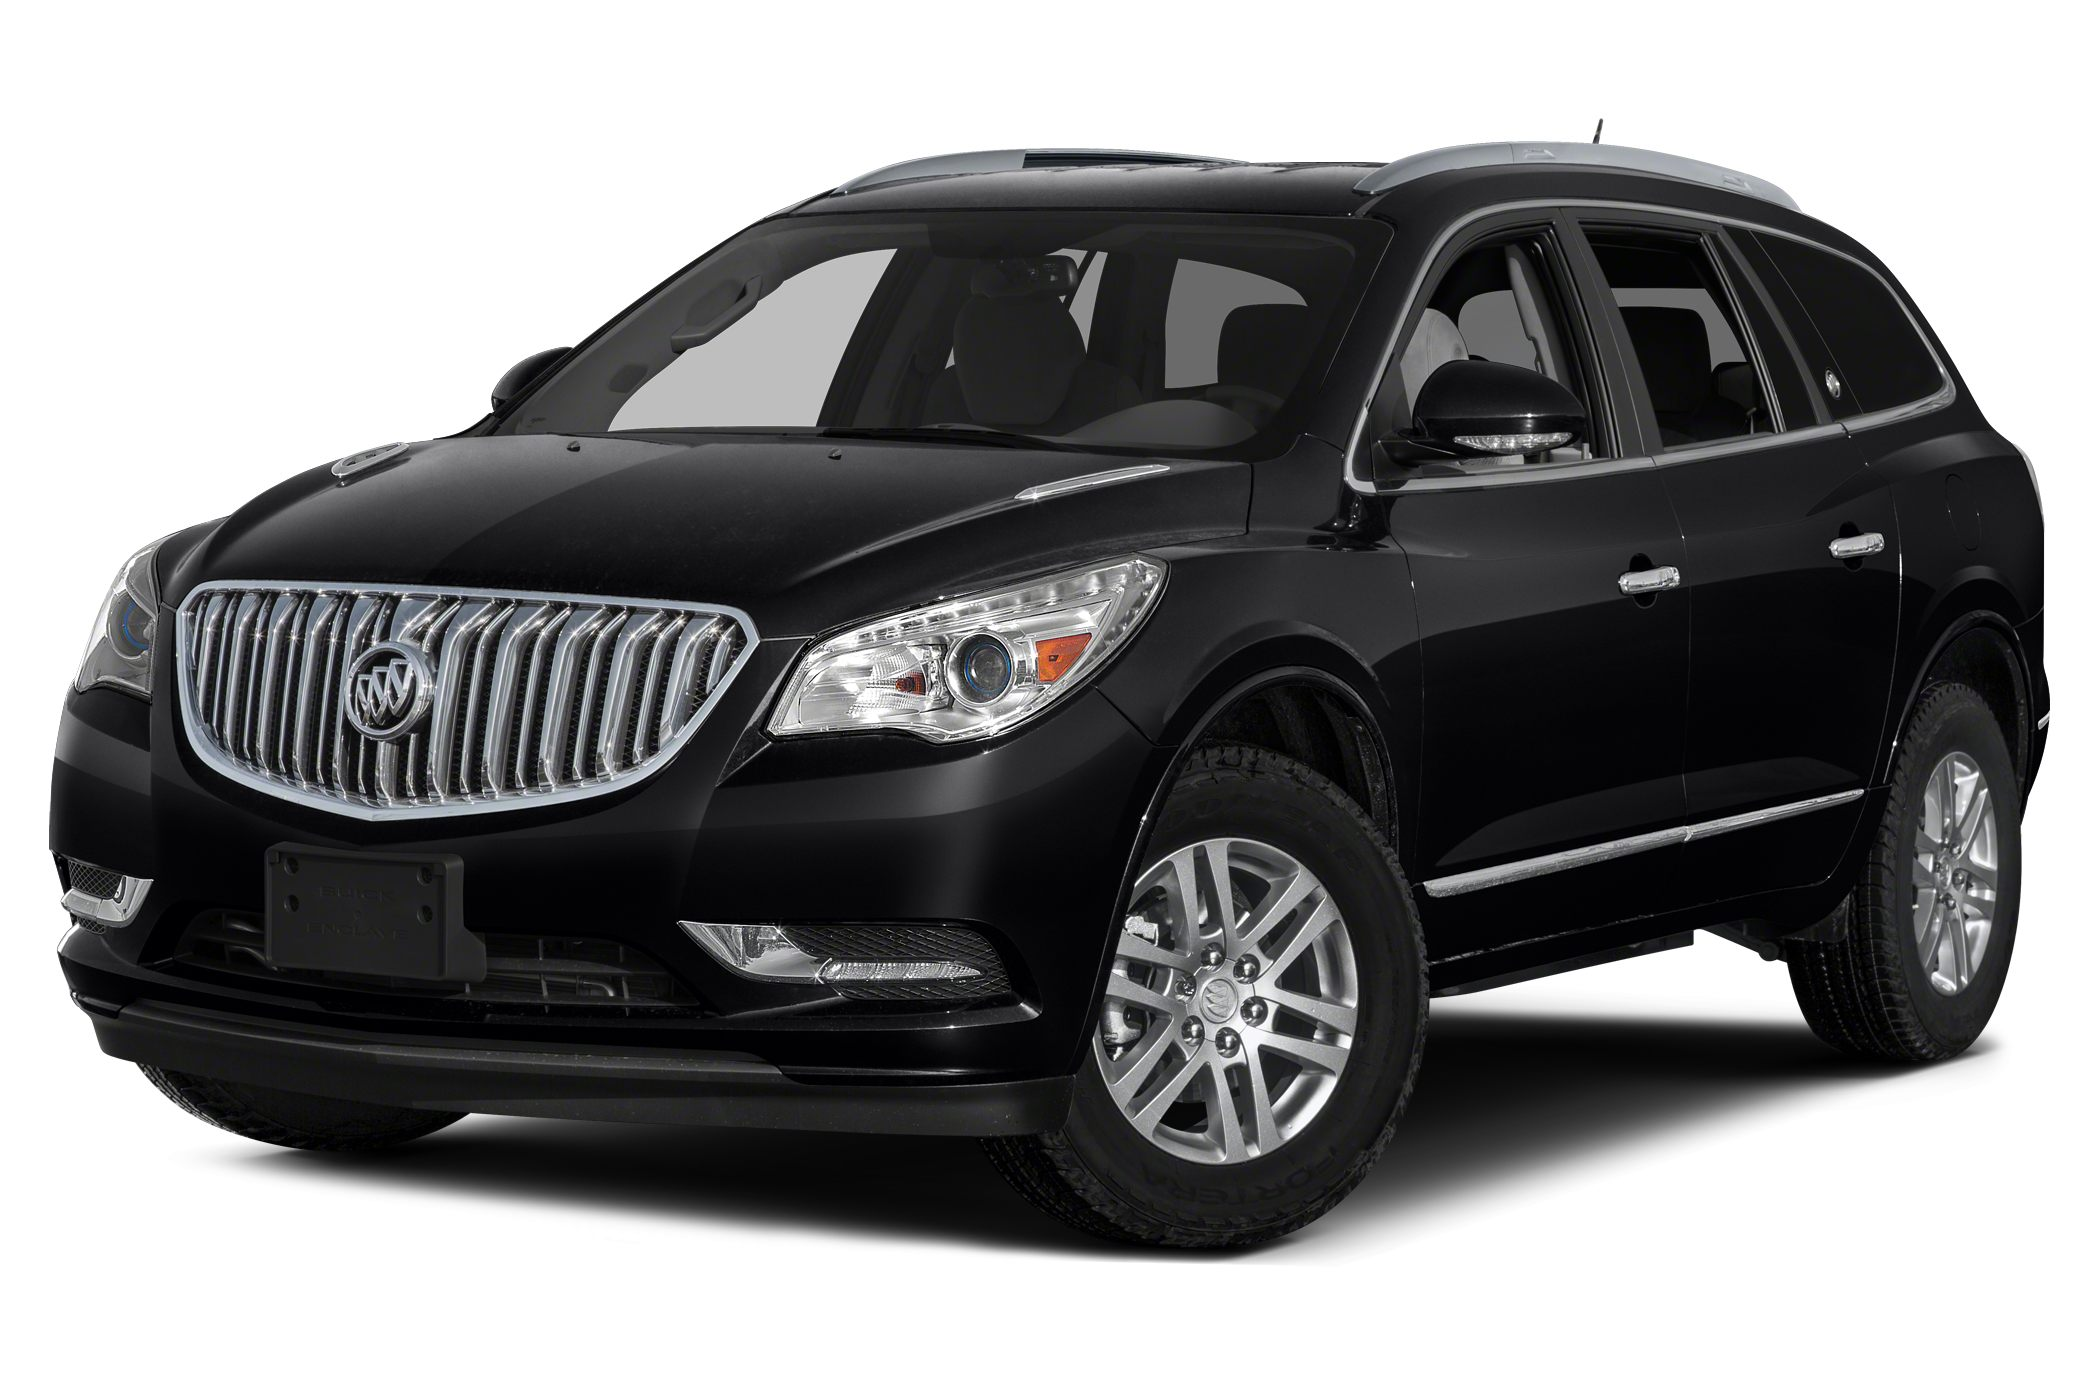 2016 Buick Enclave Premium CERTIFIED PRE-OWNED 2016 BUICK ENCLAVE PREMIUMWELL MAINTAINEDCLEAN